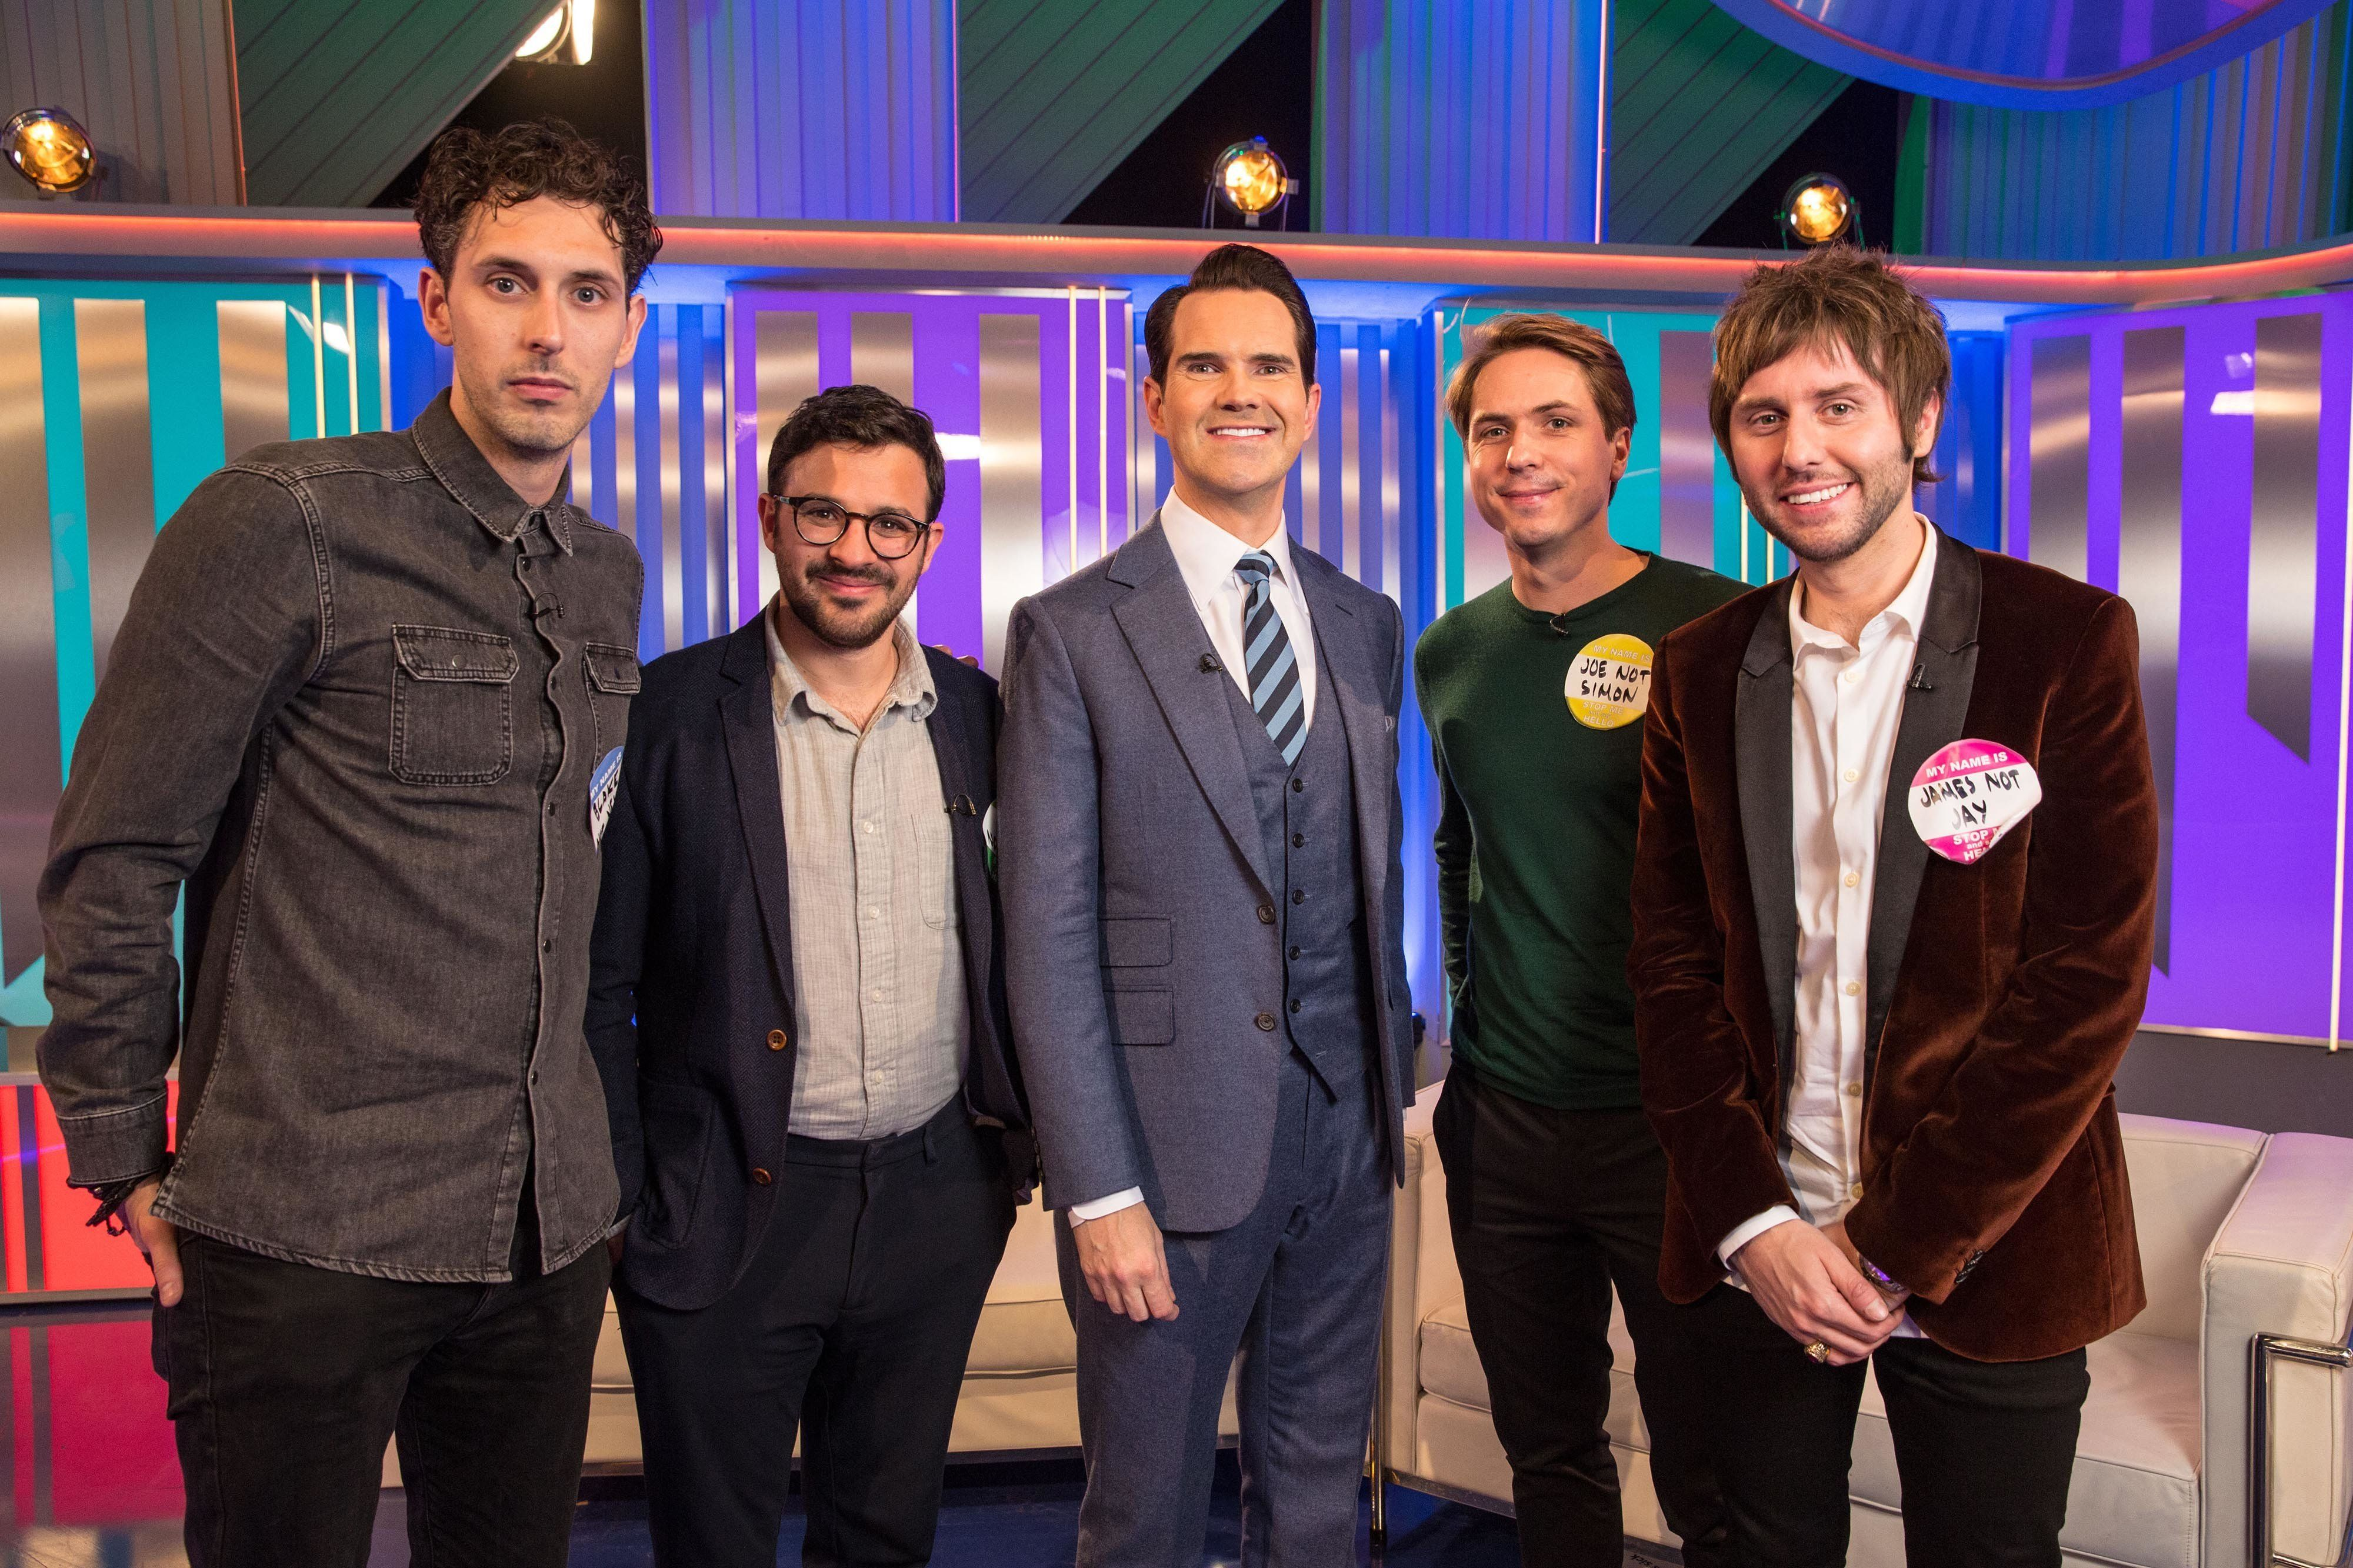 Inbetweeners star feels 'hated' after reunion show backlash